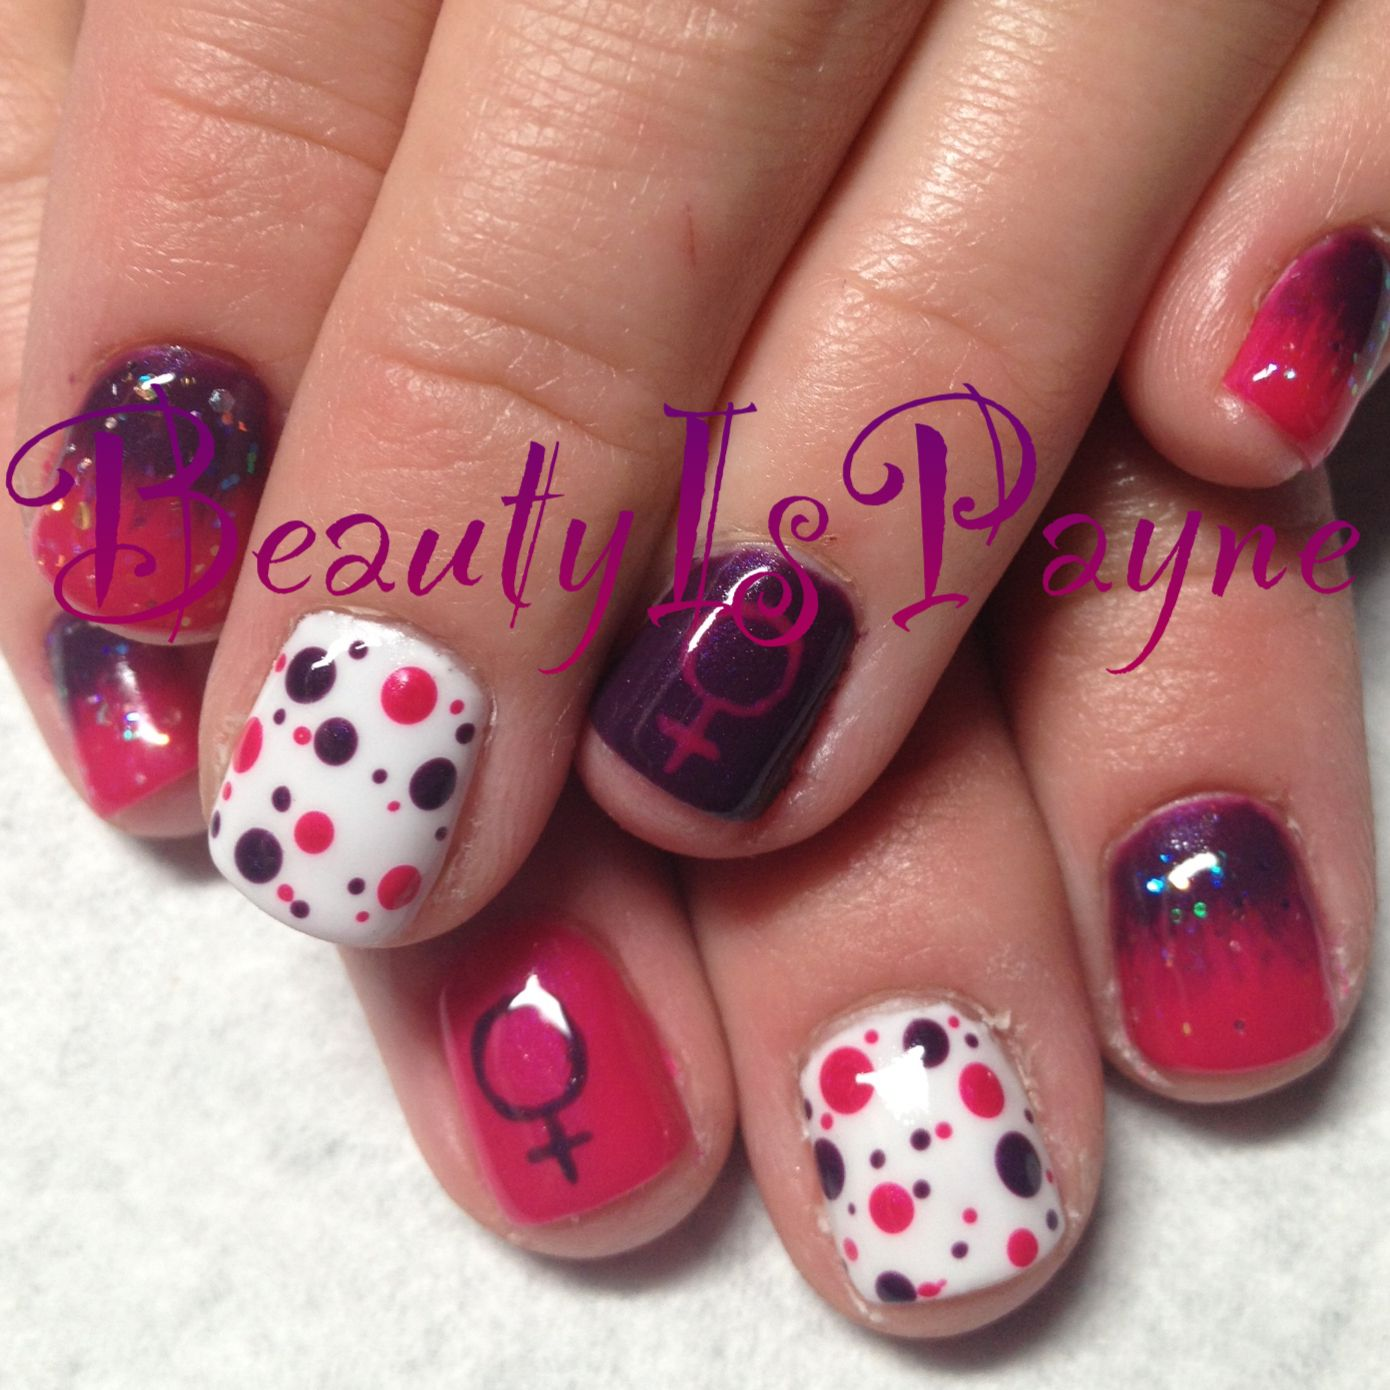 BeautyIsPayne It's a Girl!! Nails This girl ROCKS at what